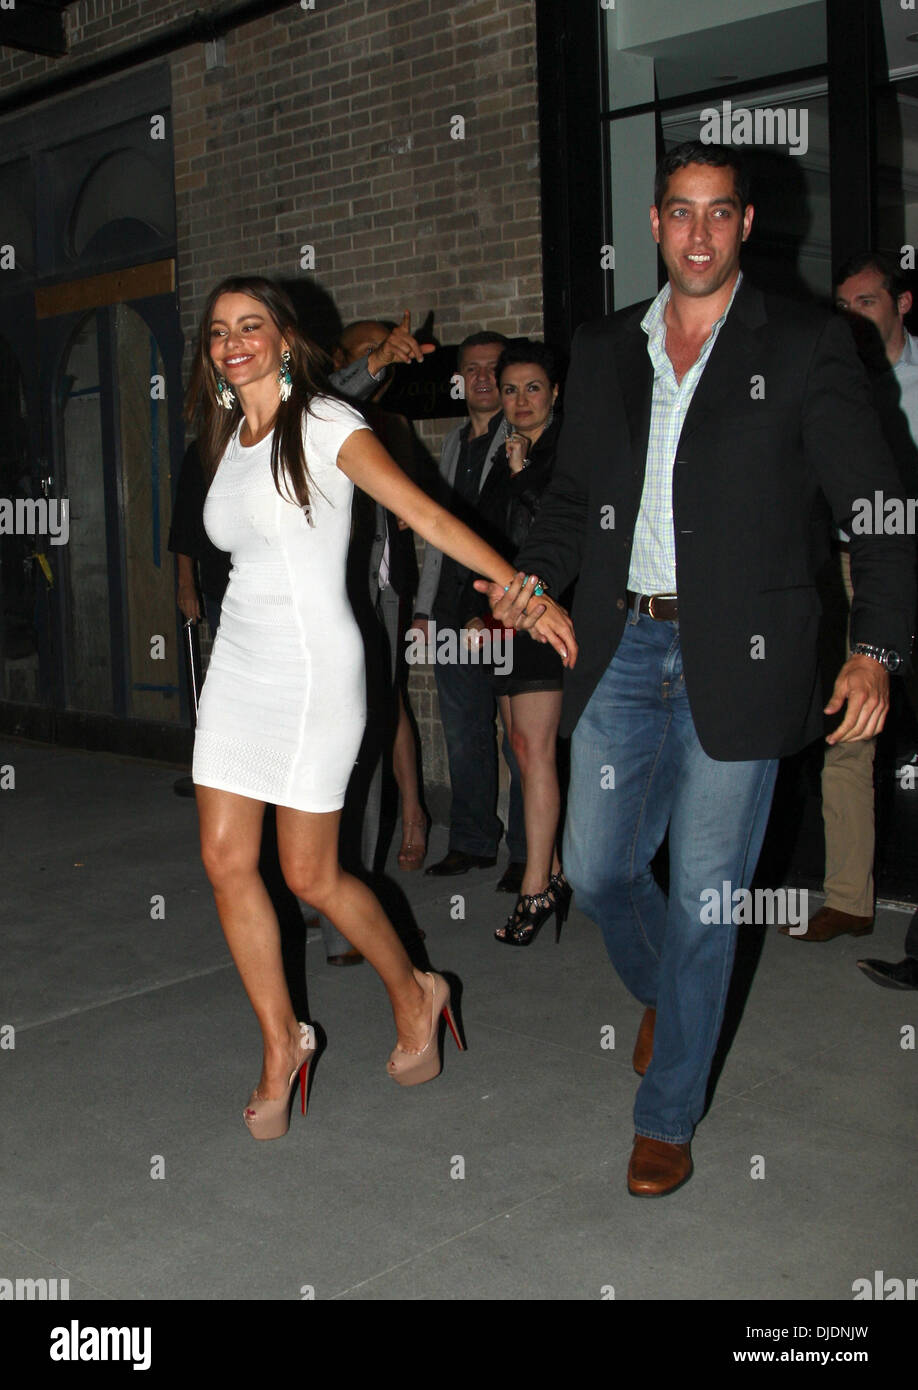 Sofia Vergara and Nick Loeb leaving the Bagatelle restaurant together in the Meatpacking District, Manhattan. New Stock Photo